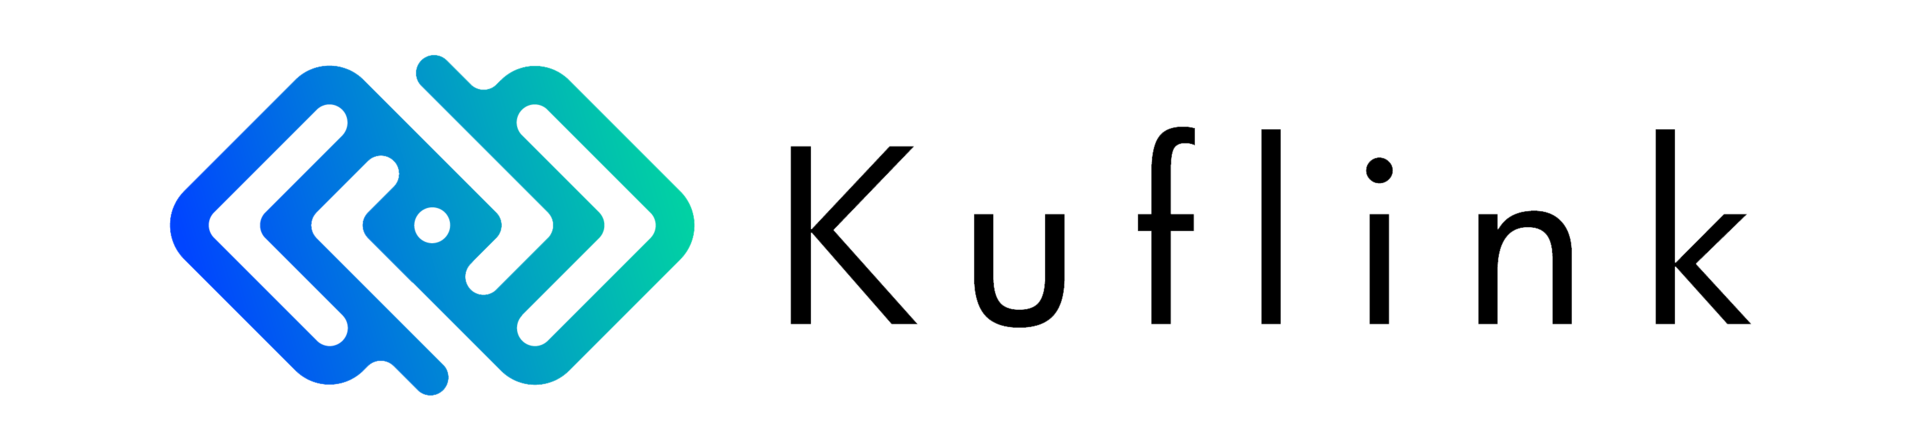 Kuflink Logo Loan Watch